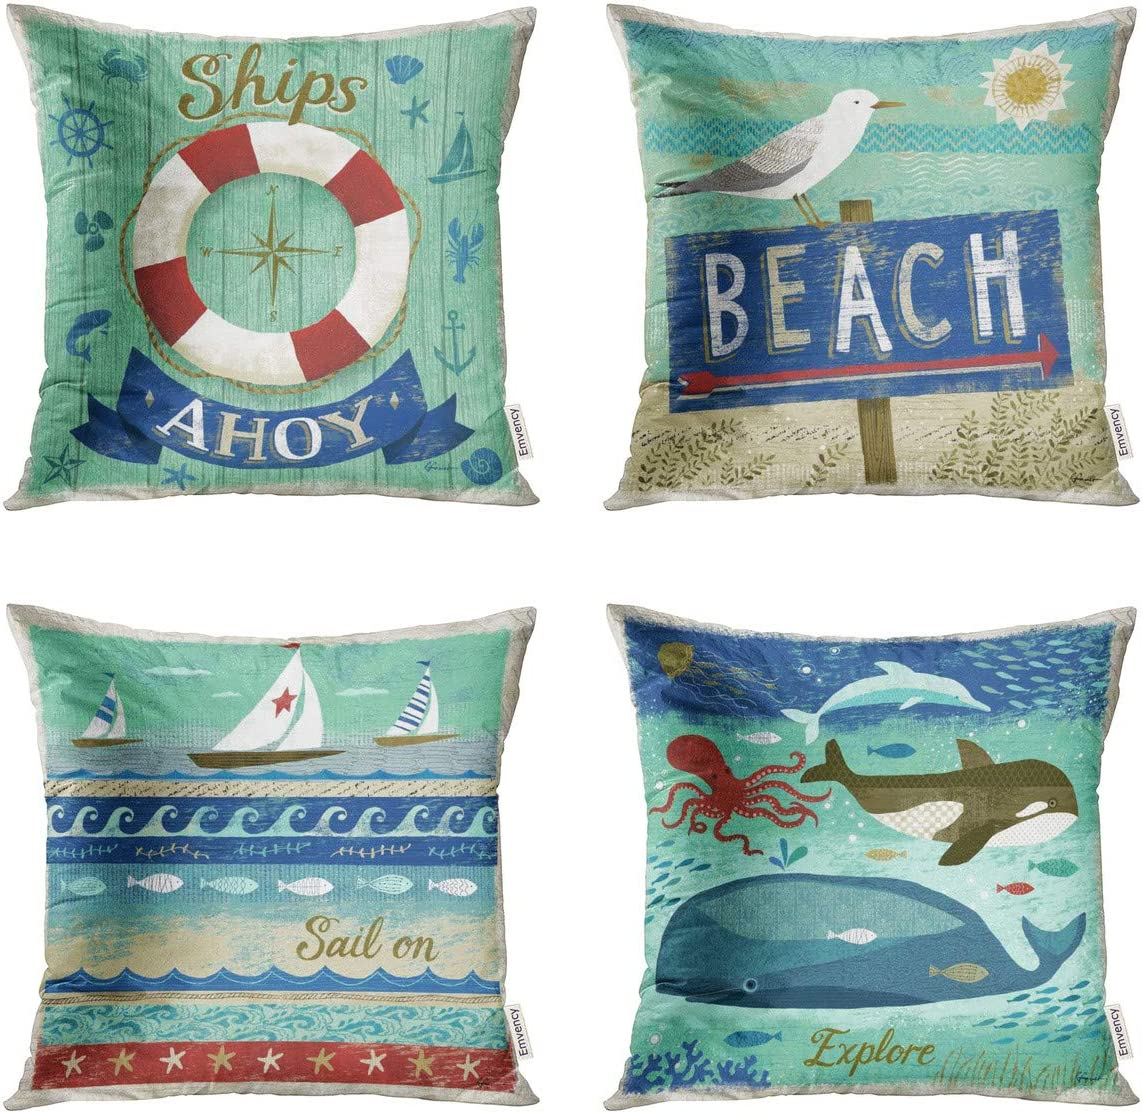 Taysta Pack of 4 Throw Pillow Covers Cases Beach Travel Coastal Whimsical Merry Christmas Decorative Square Pillowcase Cover Case Cushion Home Decor 18 x 18 Inches